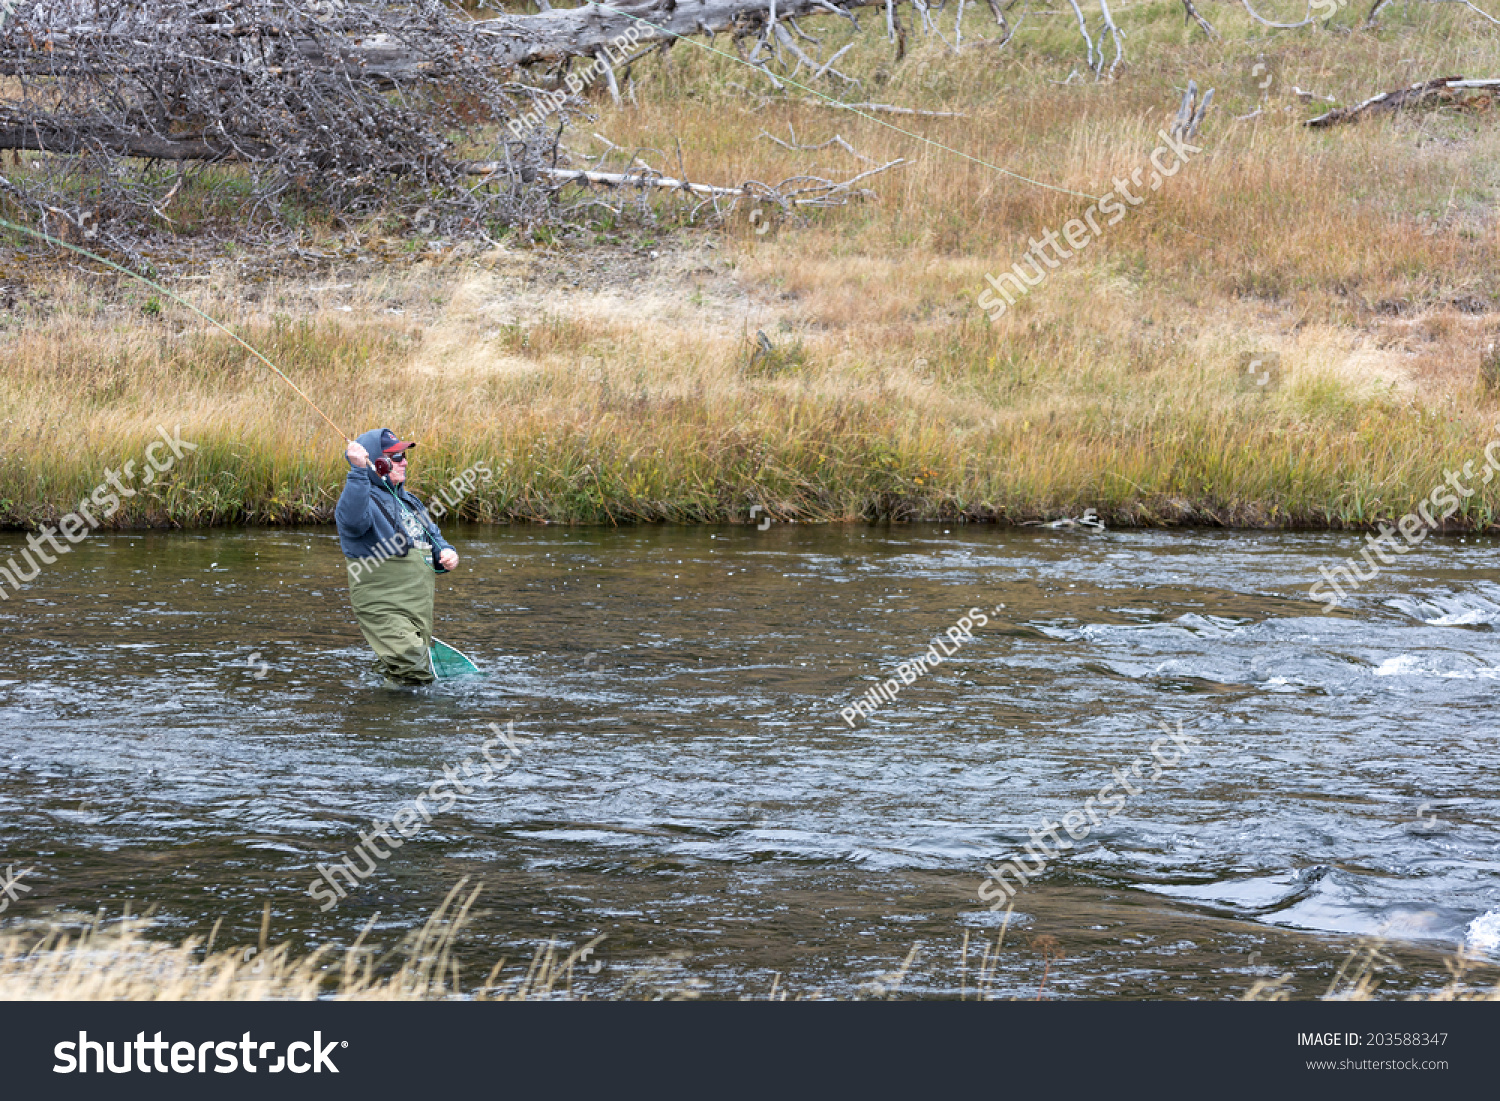 Fairy creek yellowstoneusa september 28 fly stock photo for Fly fish usa